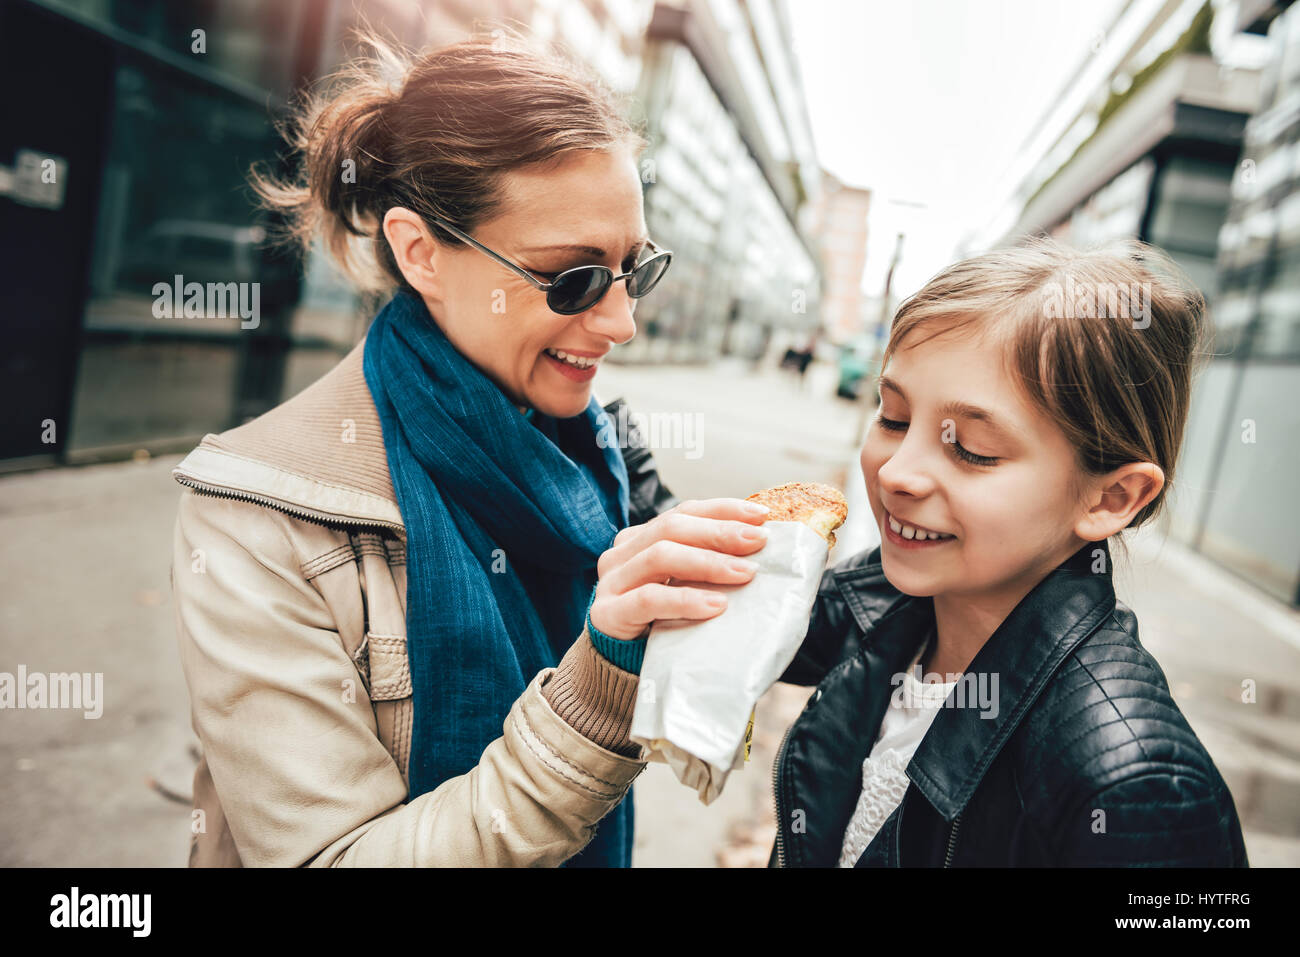 Mother walking down the city and daughter sharing sandwich - Stock Image